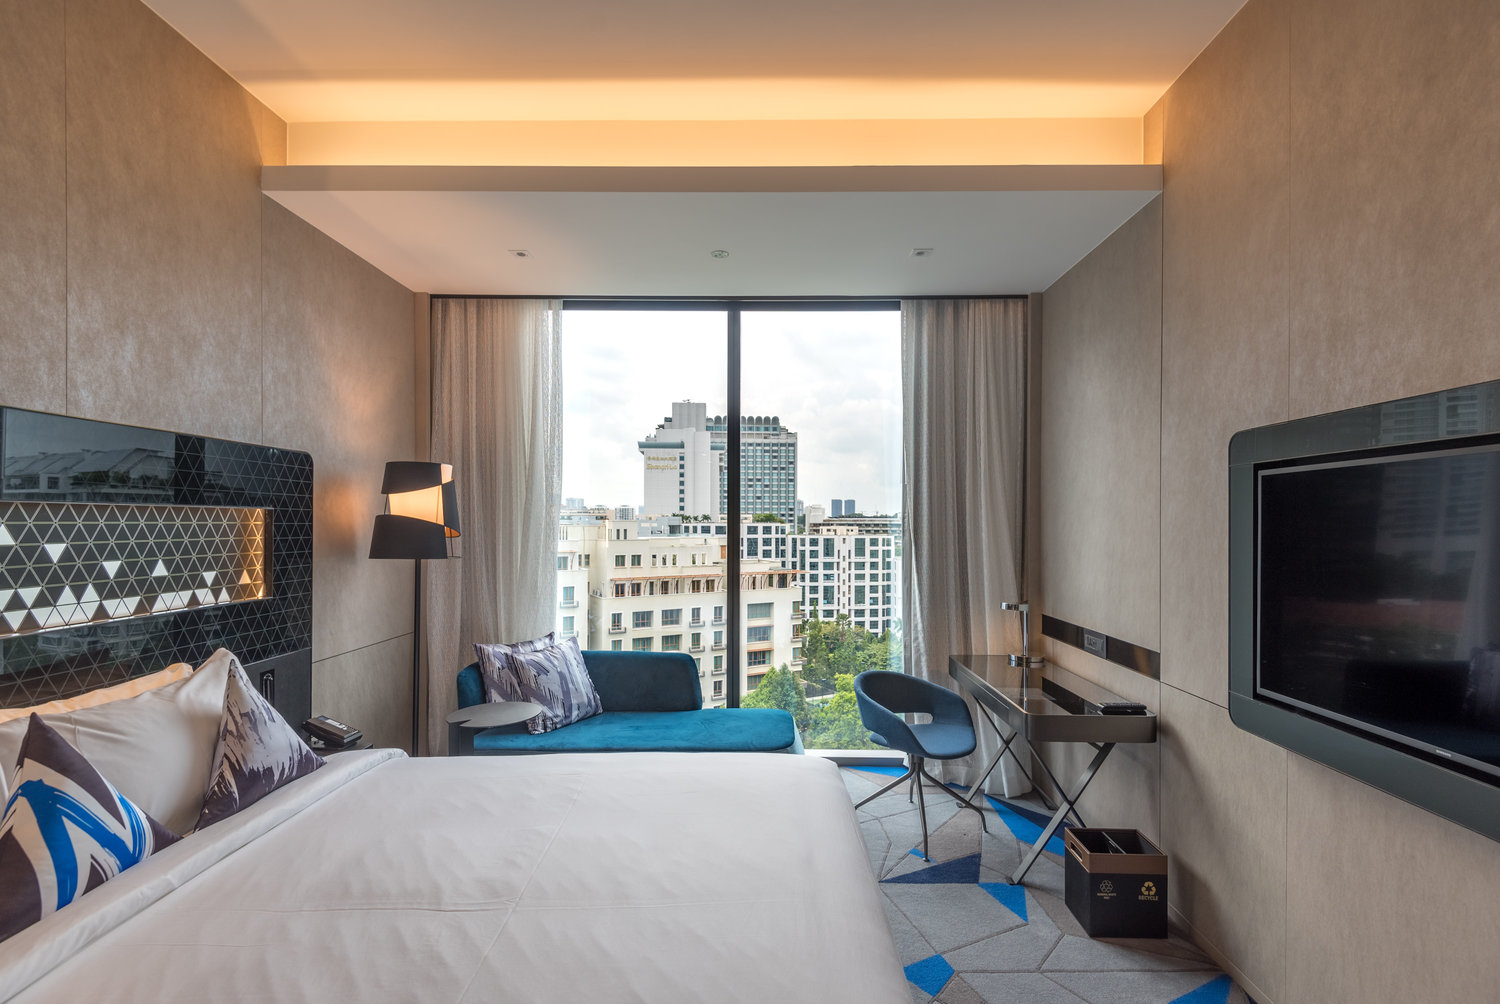 Hotel Review: Novotel Singapore on Stevens (Premier Room) - Affordable Business Hotel near Orchard Road